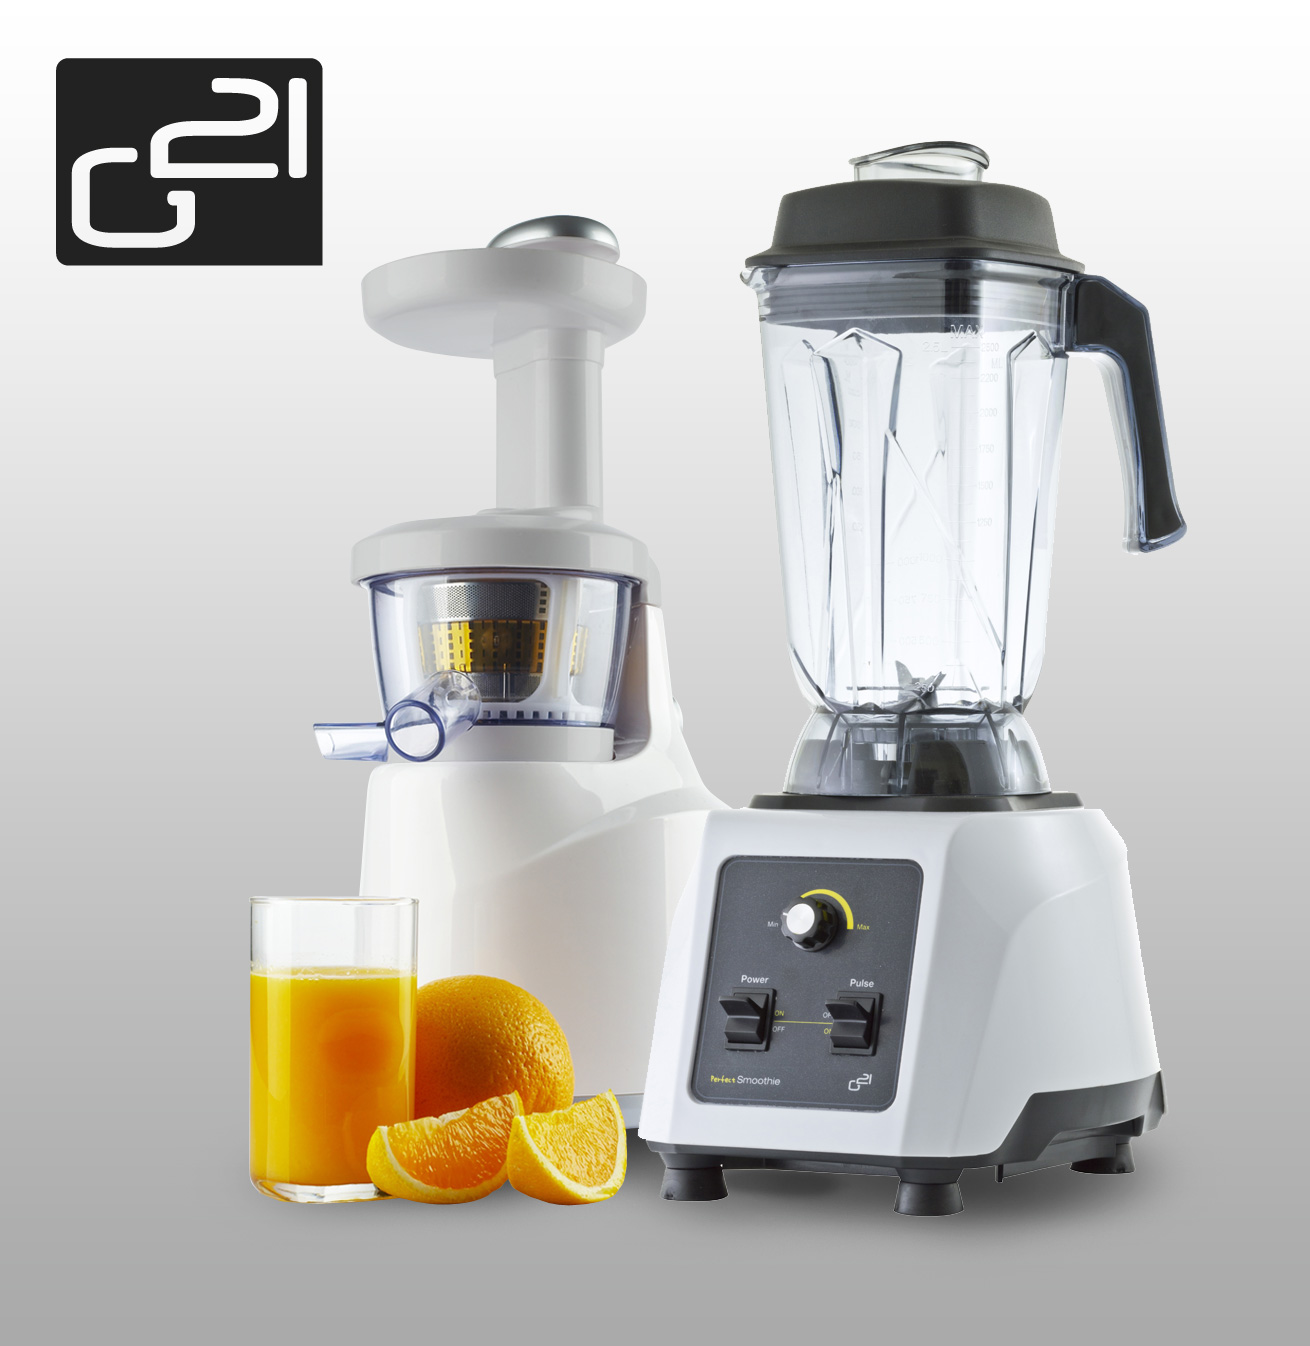 Set G21 blender perfect smoothie + perfect juicer white